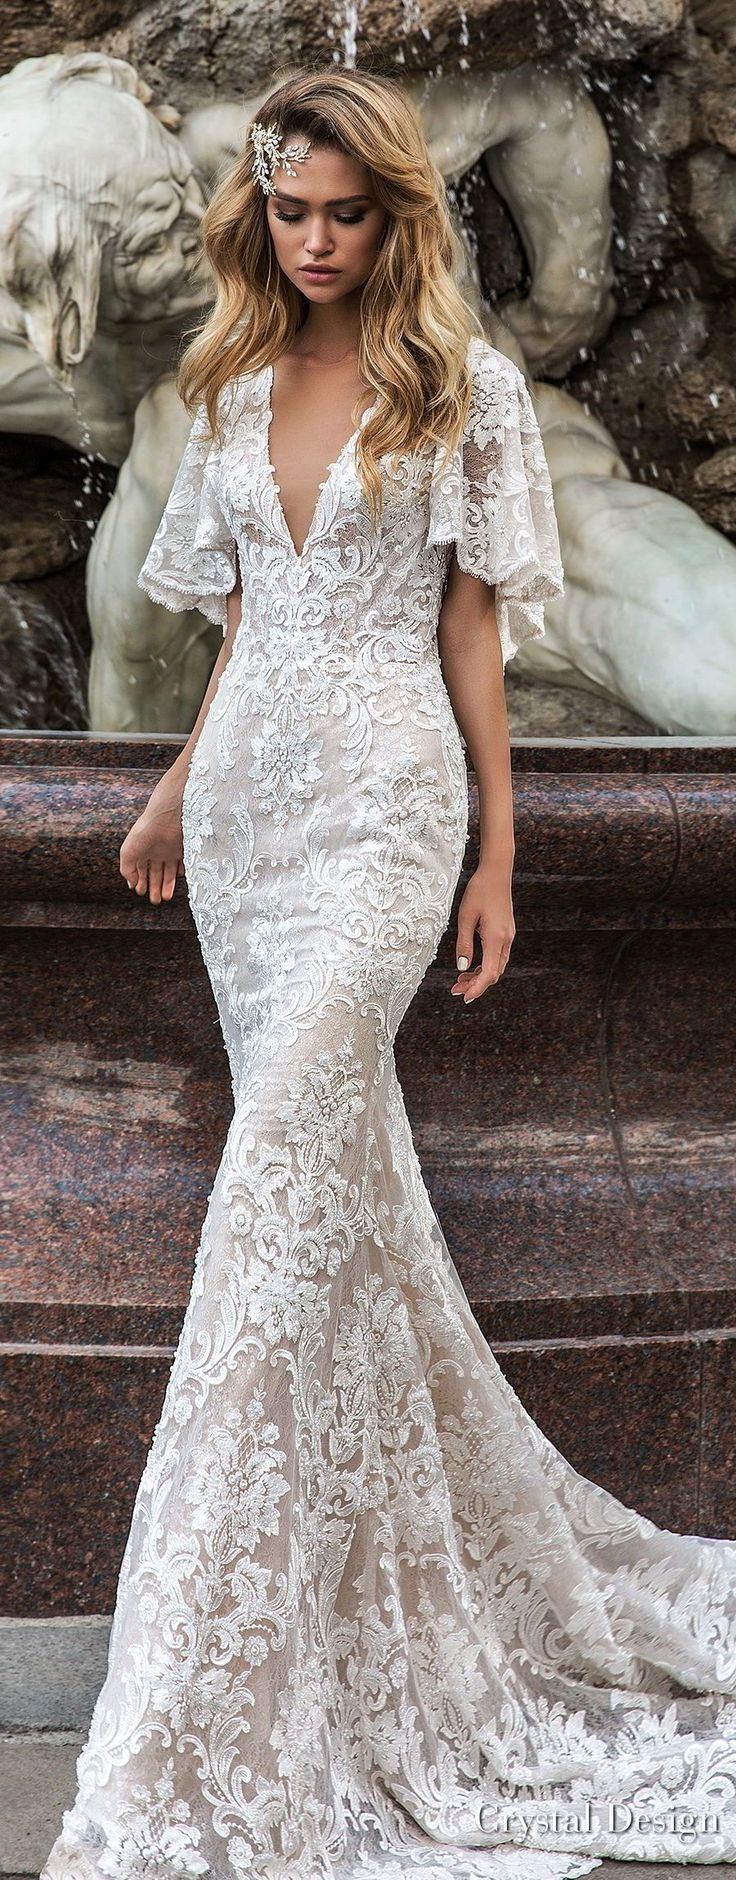 best wedding dreams images on pinterest gown wedding